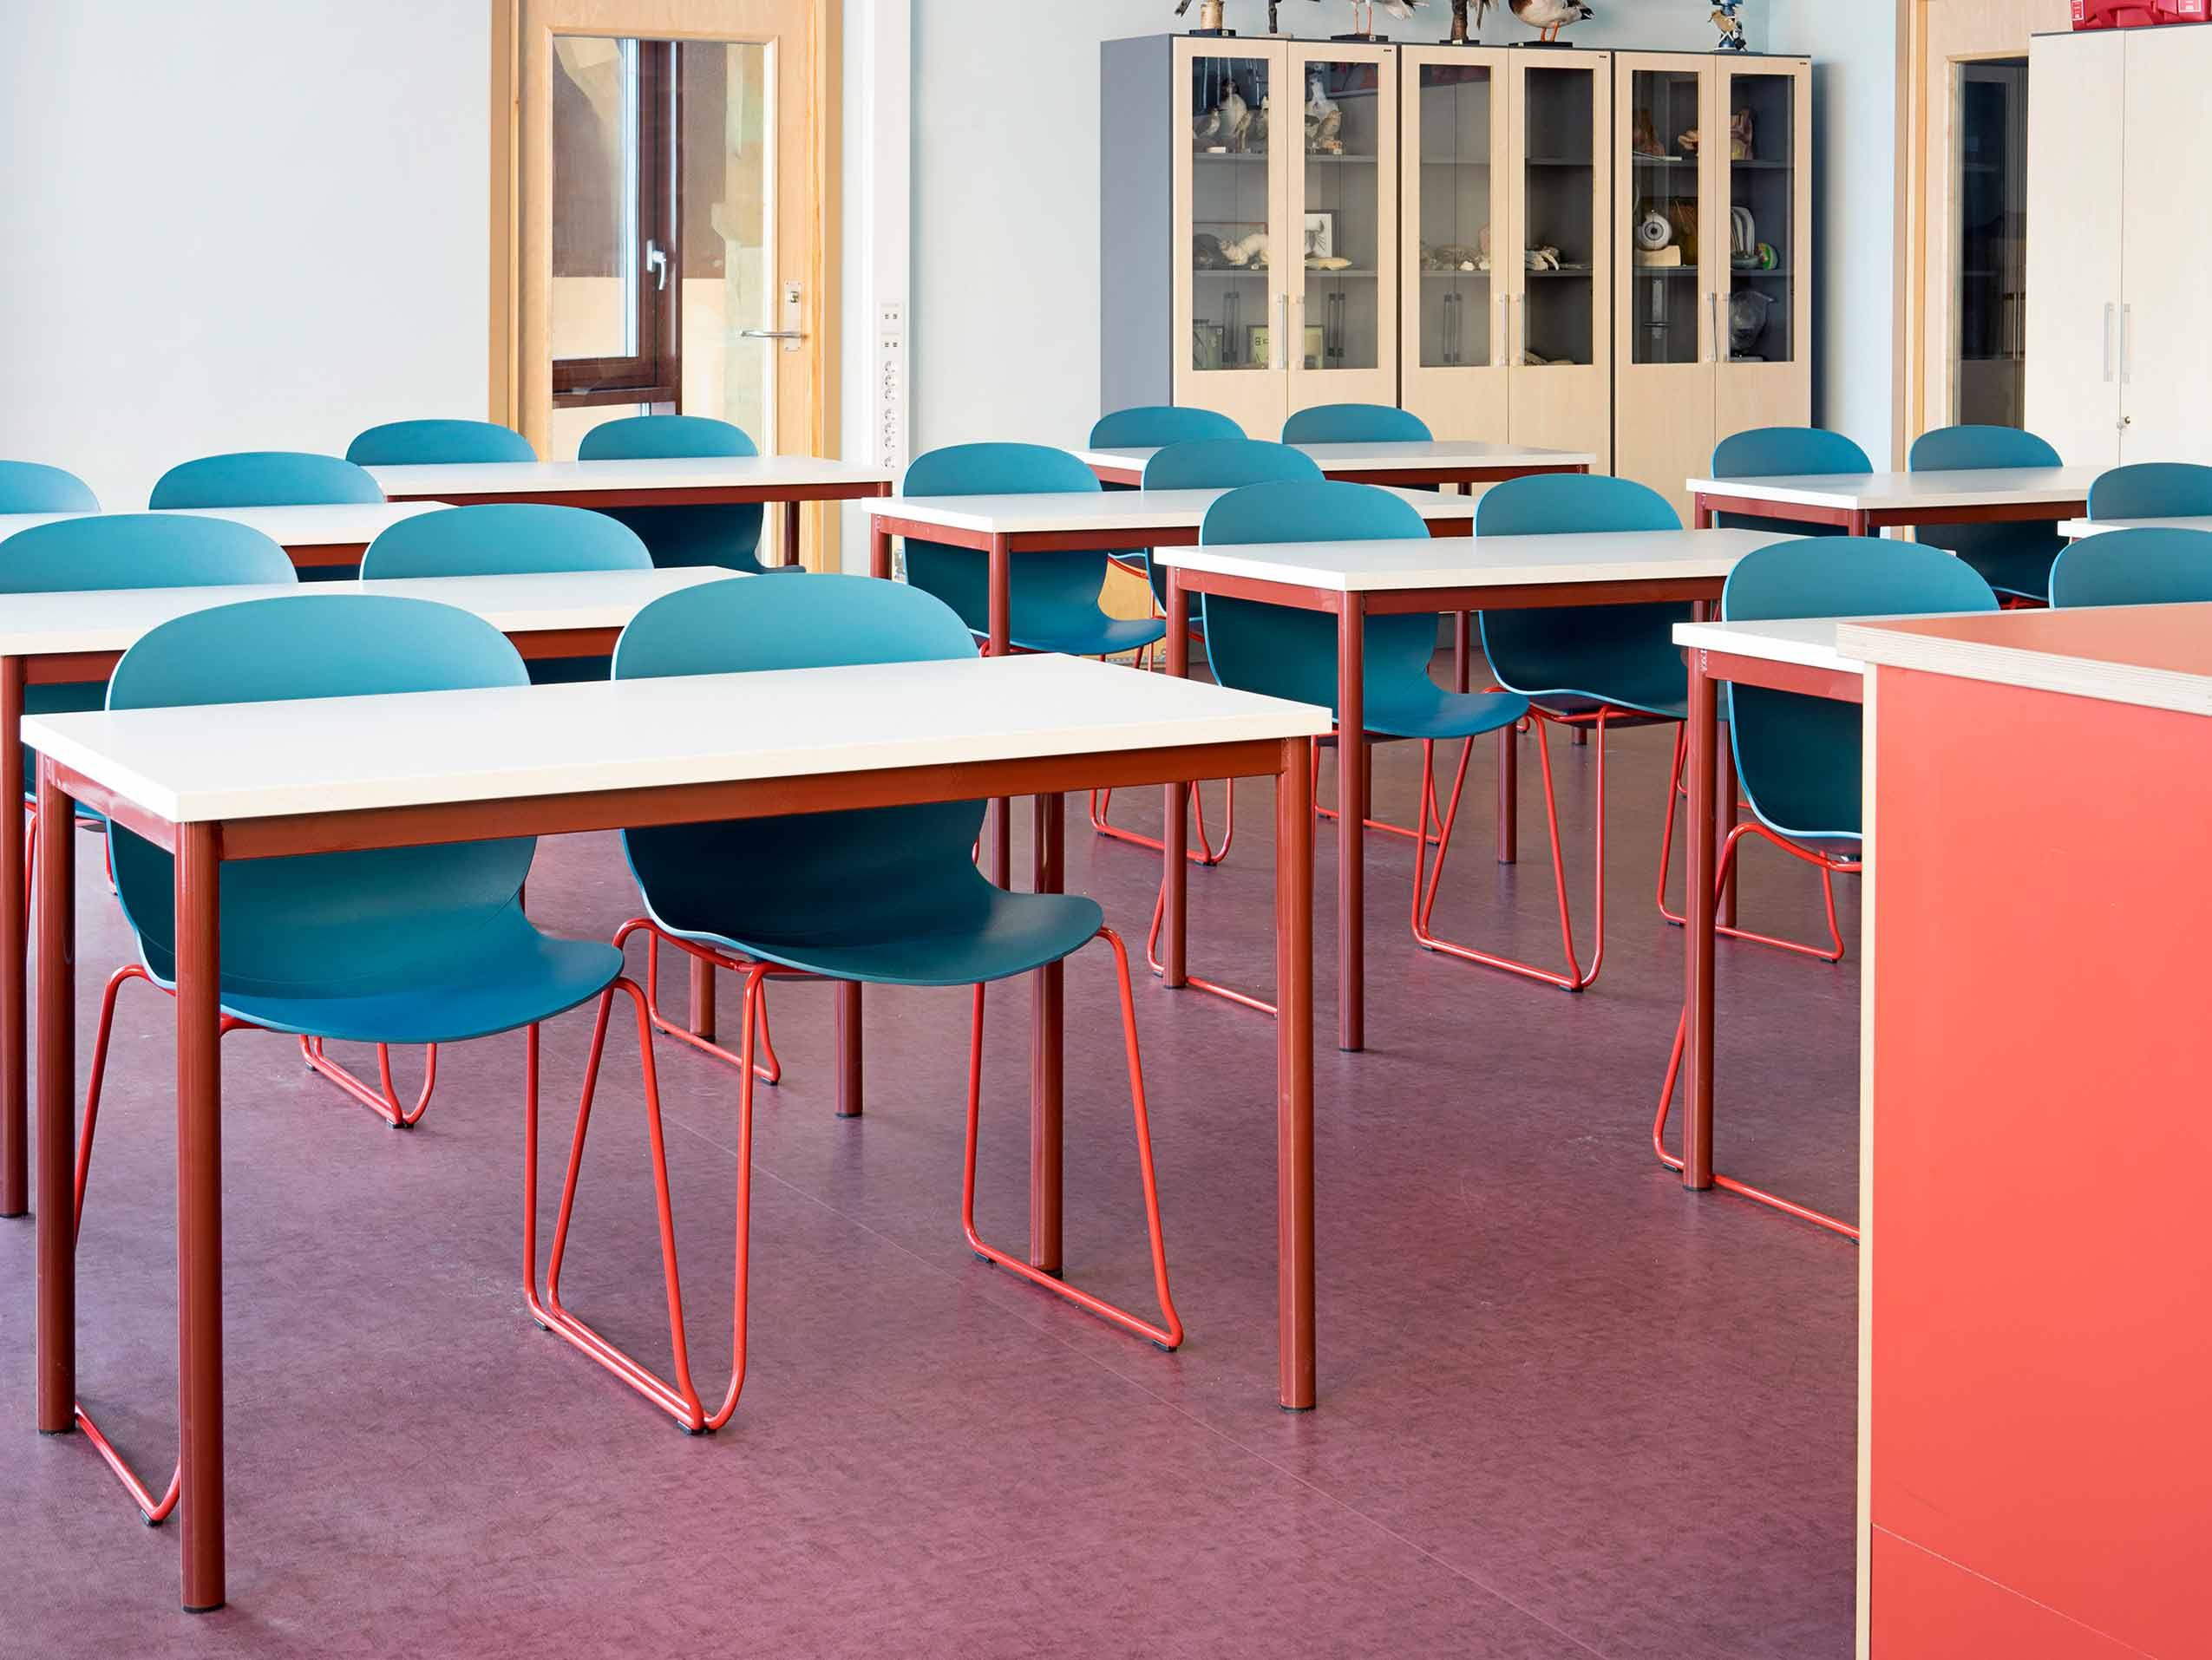 turquoise and red RBM Noor chairs in a classroom at Hebekk School